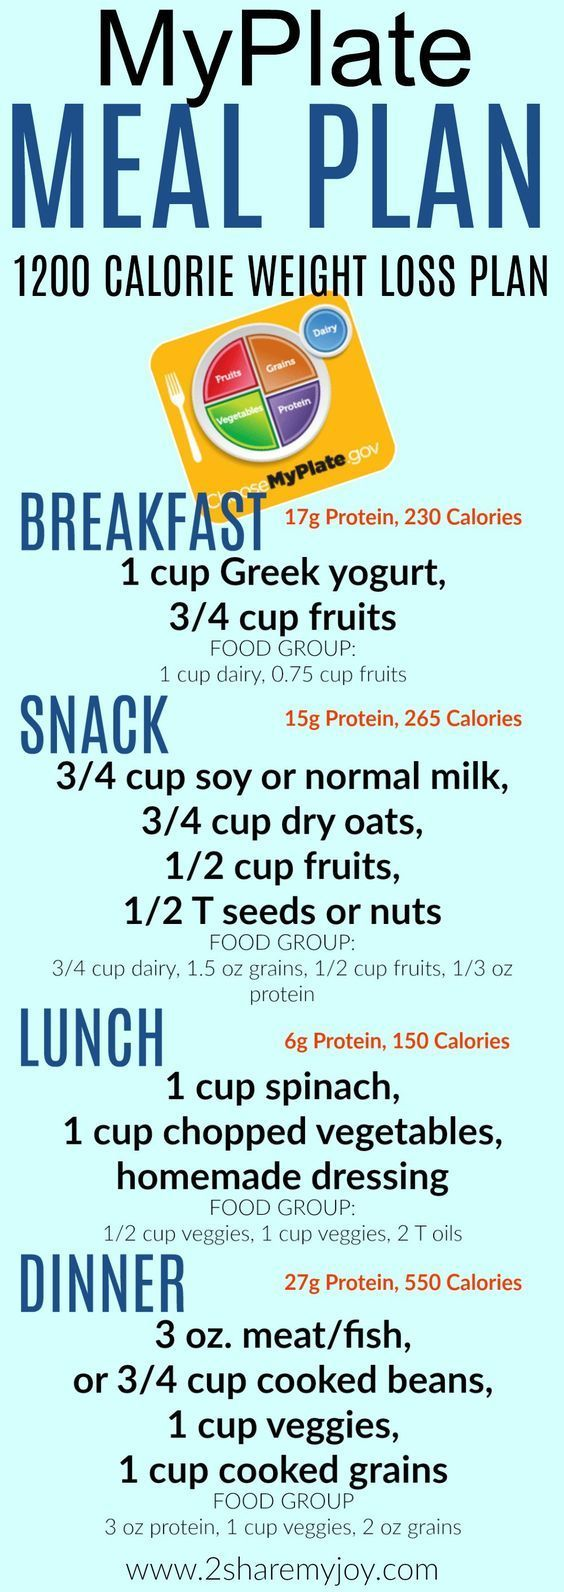 myplate meal ideas for healthy eating 1200 calorie meal plan to lose weight fast on a balanced portion control diet CLean eating recipes for all food groups